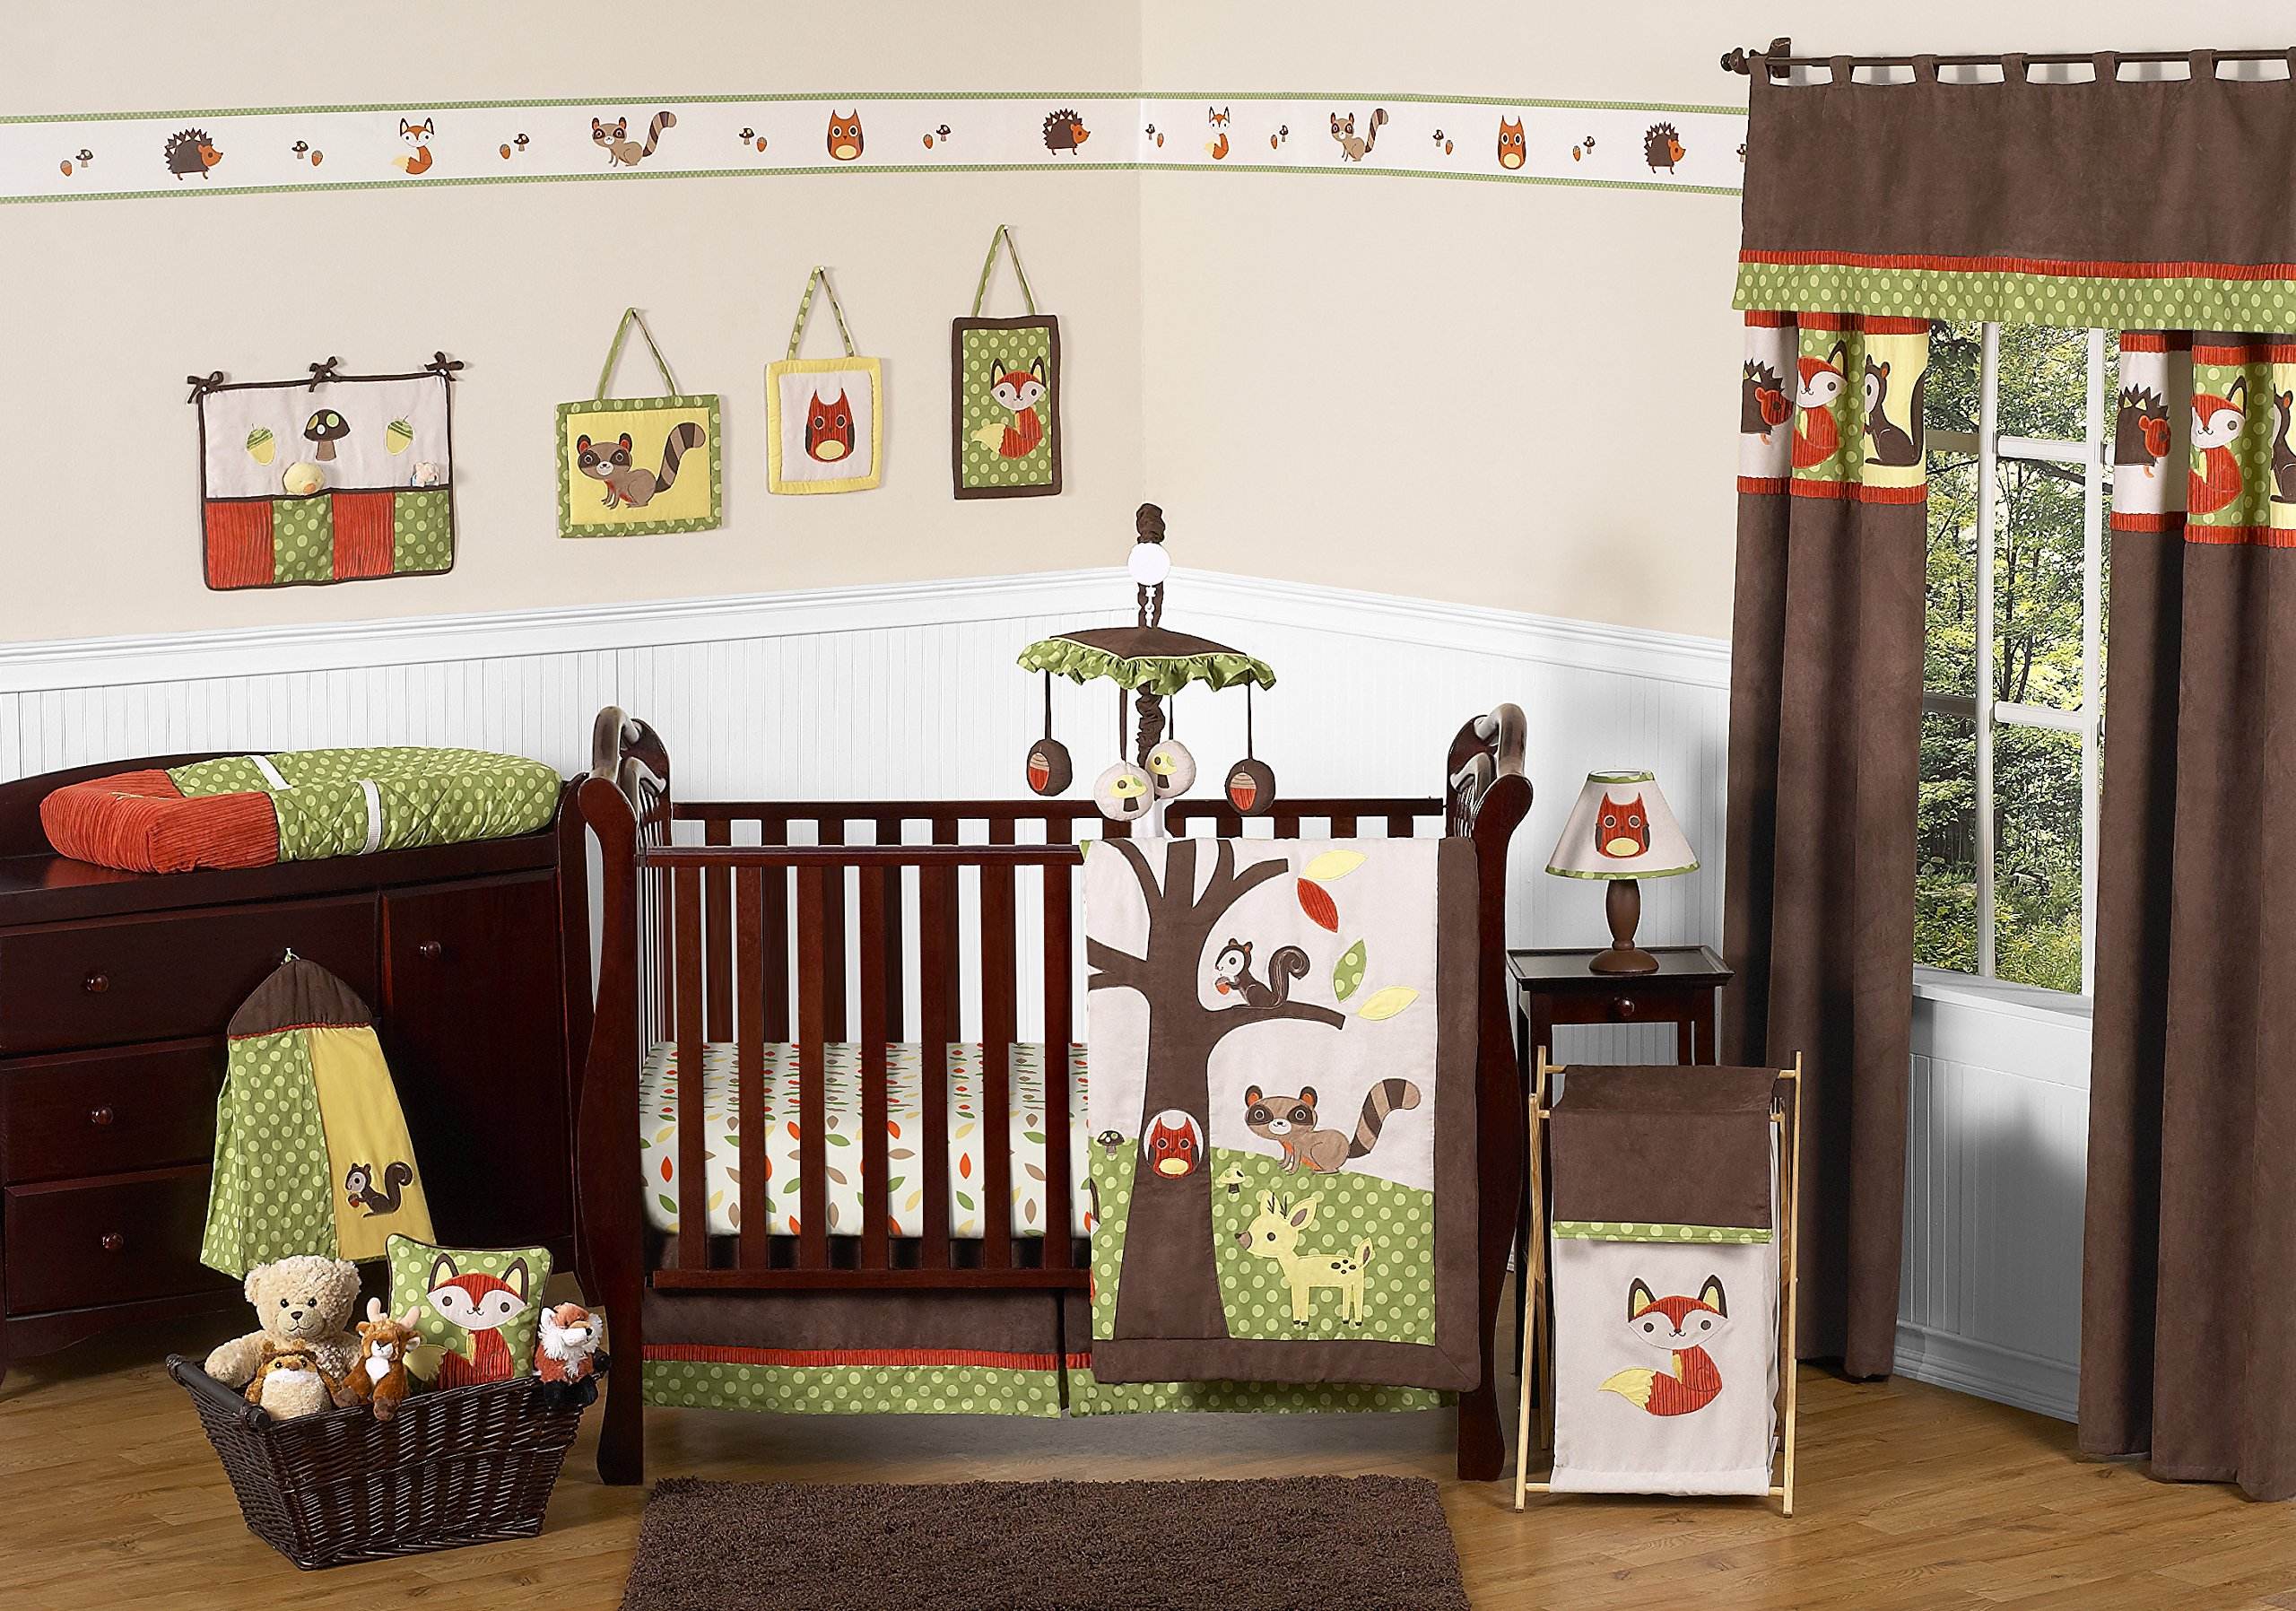 Sweet Jojo Designs 11-Piece Woodland Forest Animals Owl Deer Tree Baby Boy Nature Bedding Crib Set Without Bumper